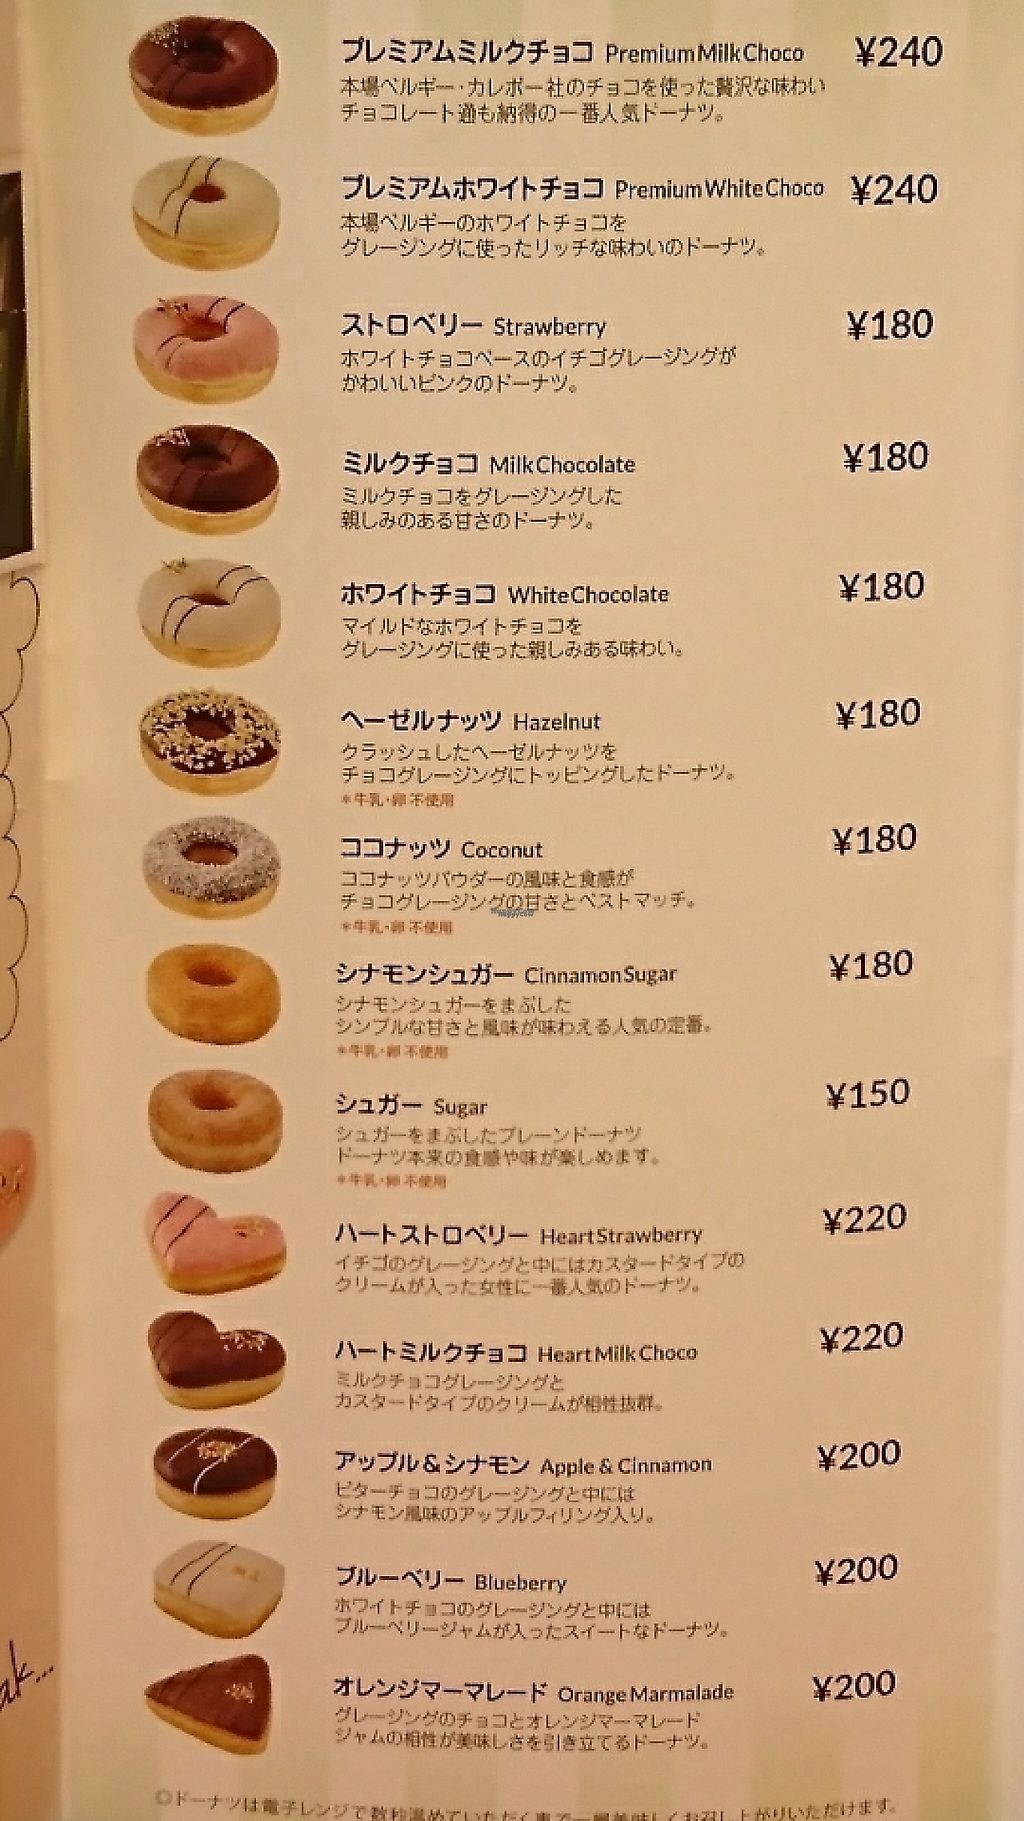 "Photo of Arnolds  by <a href=""/members/profile/moka_a"">moka_a</a> <br/>Donut menu. 4 items in the middle, namely Hazelnut, Coconut, CinnamonSugar & Sugar are the vegan choices available as of Feb 2017, all of which are labeled as ""*牛乳・卵不使用"" in red characters <br/> March 2, 2017  - <a href='/contact/abuse/image/87925/231733'>Report</a>"